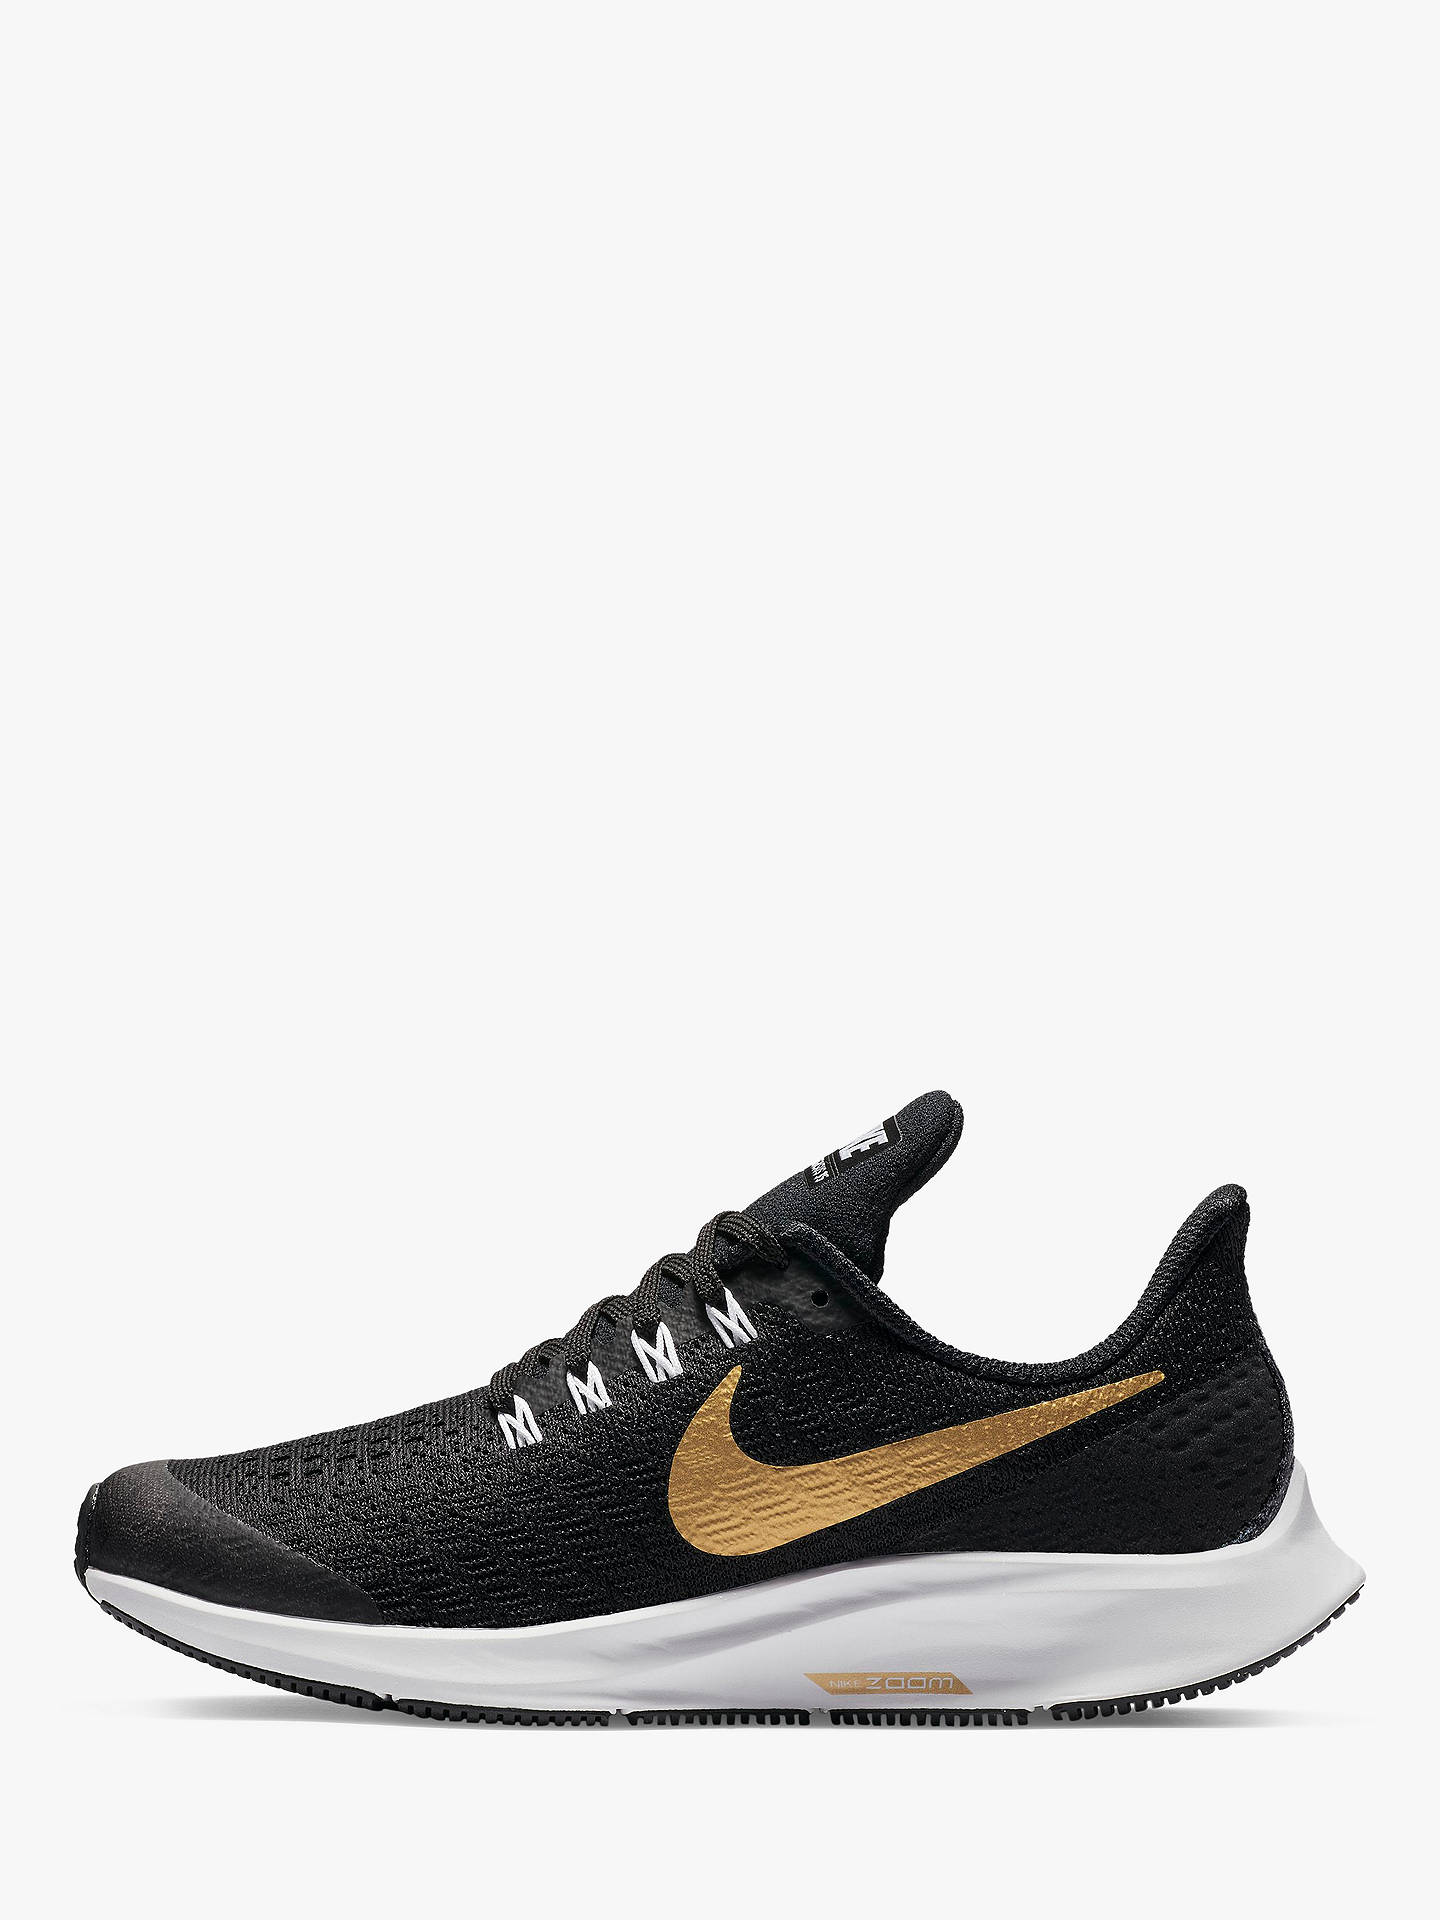 122a7eeee8366 Nike Children s Air Zoom Pegasus 35 Running Shoes at John Lewis ...